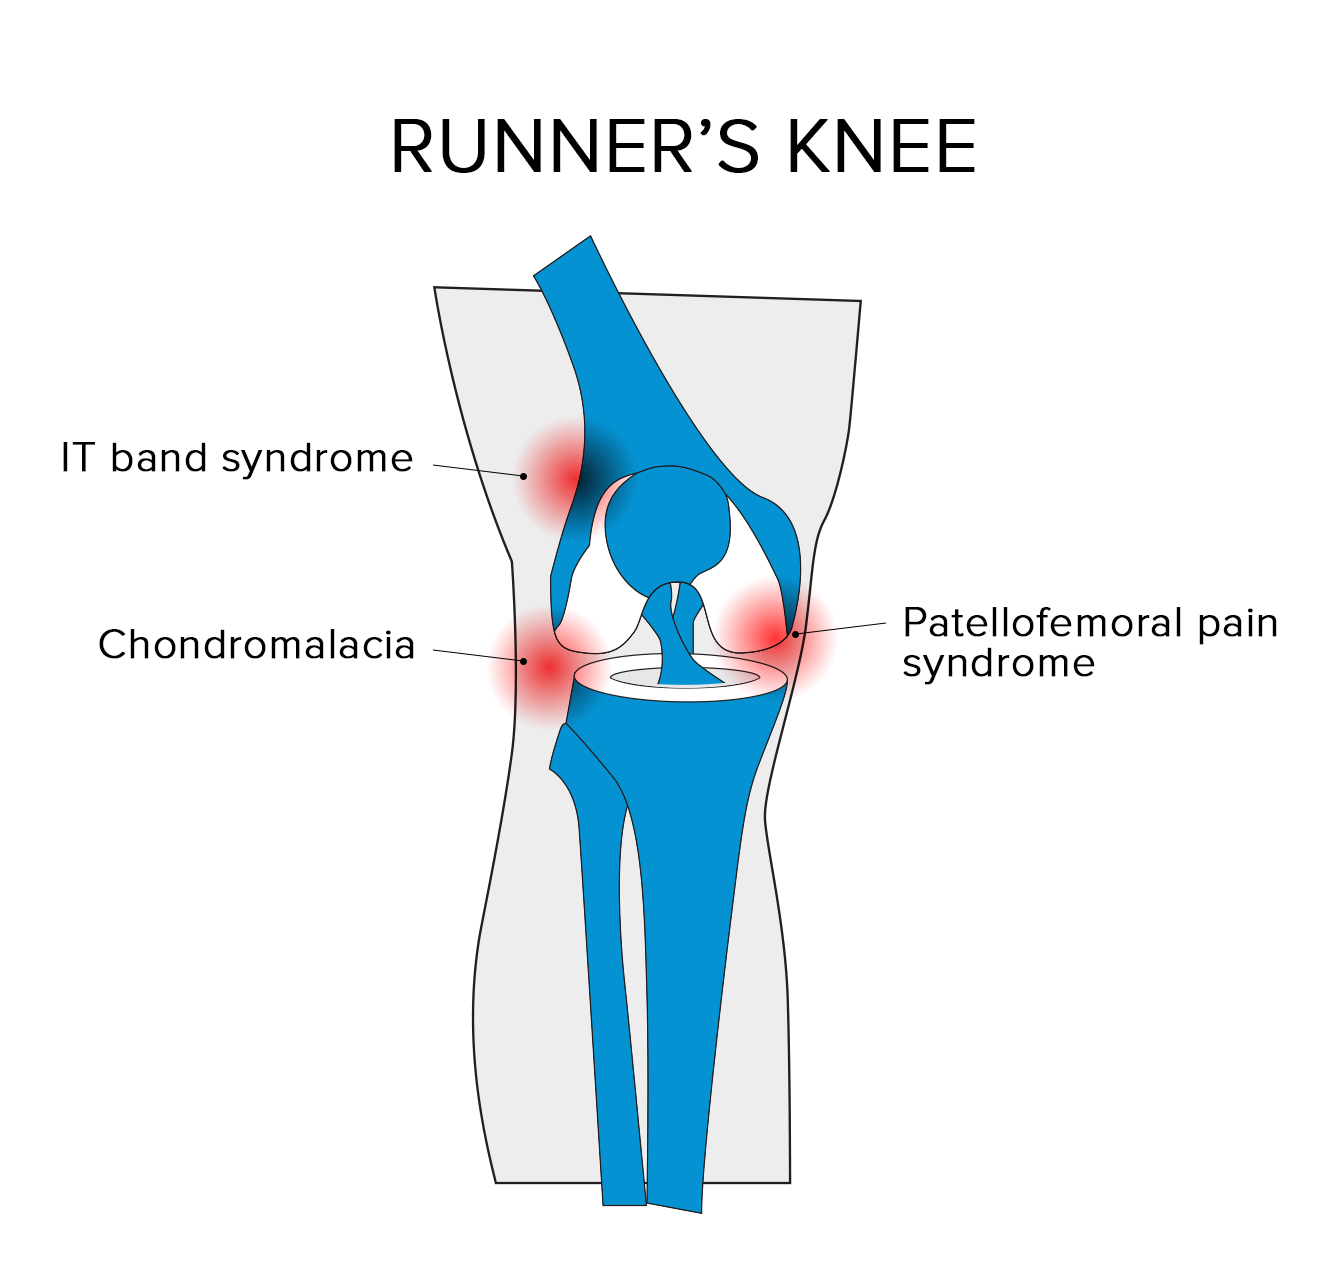 hight resolution of there are a few different types of runner s knee that could be troubling you the easiest way to identify your condition is by isolating the area of your